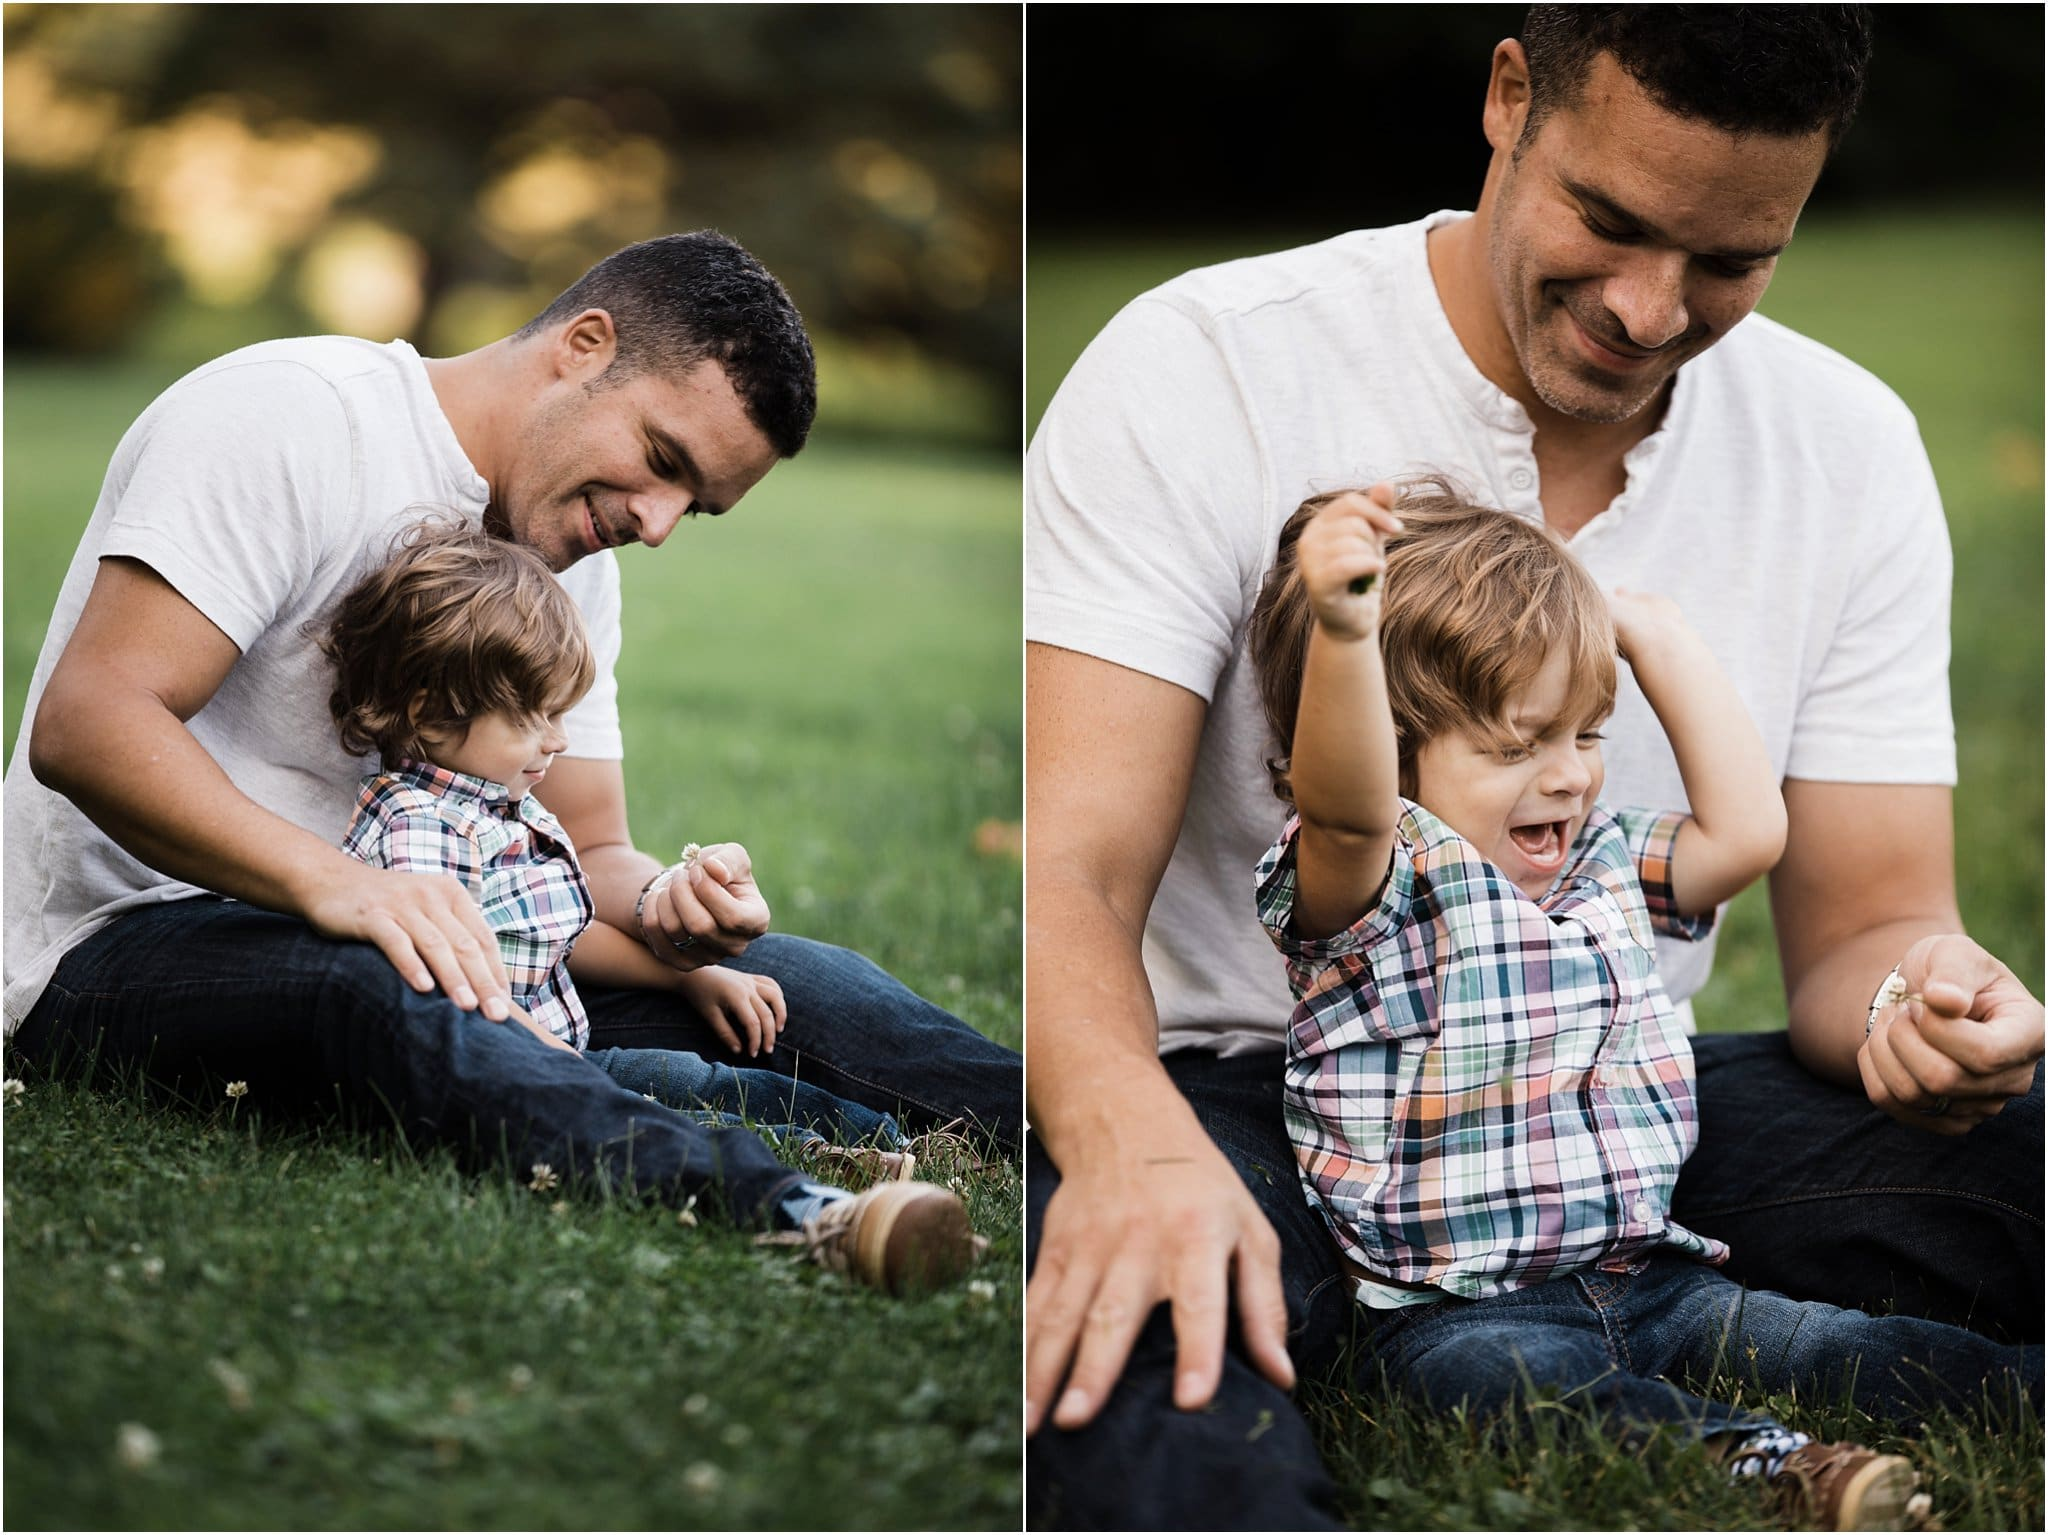 photos of father and son sitting and laughing